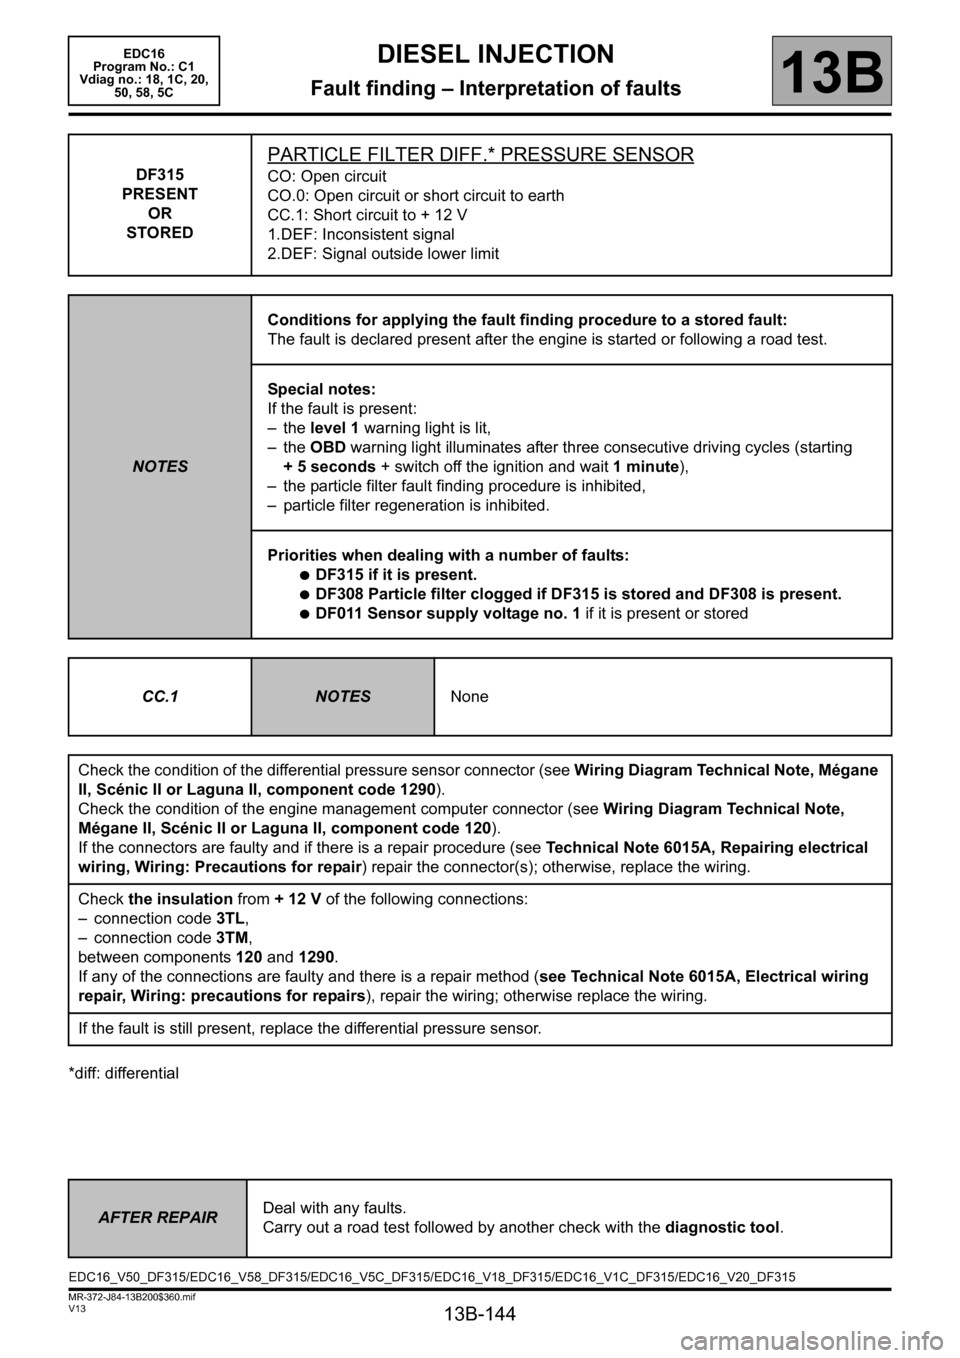 Renault Scenic 2011 J95 3g Engine And Peripherals Edc16 Workshop Wiring Diagram Manual Page